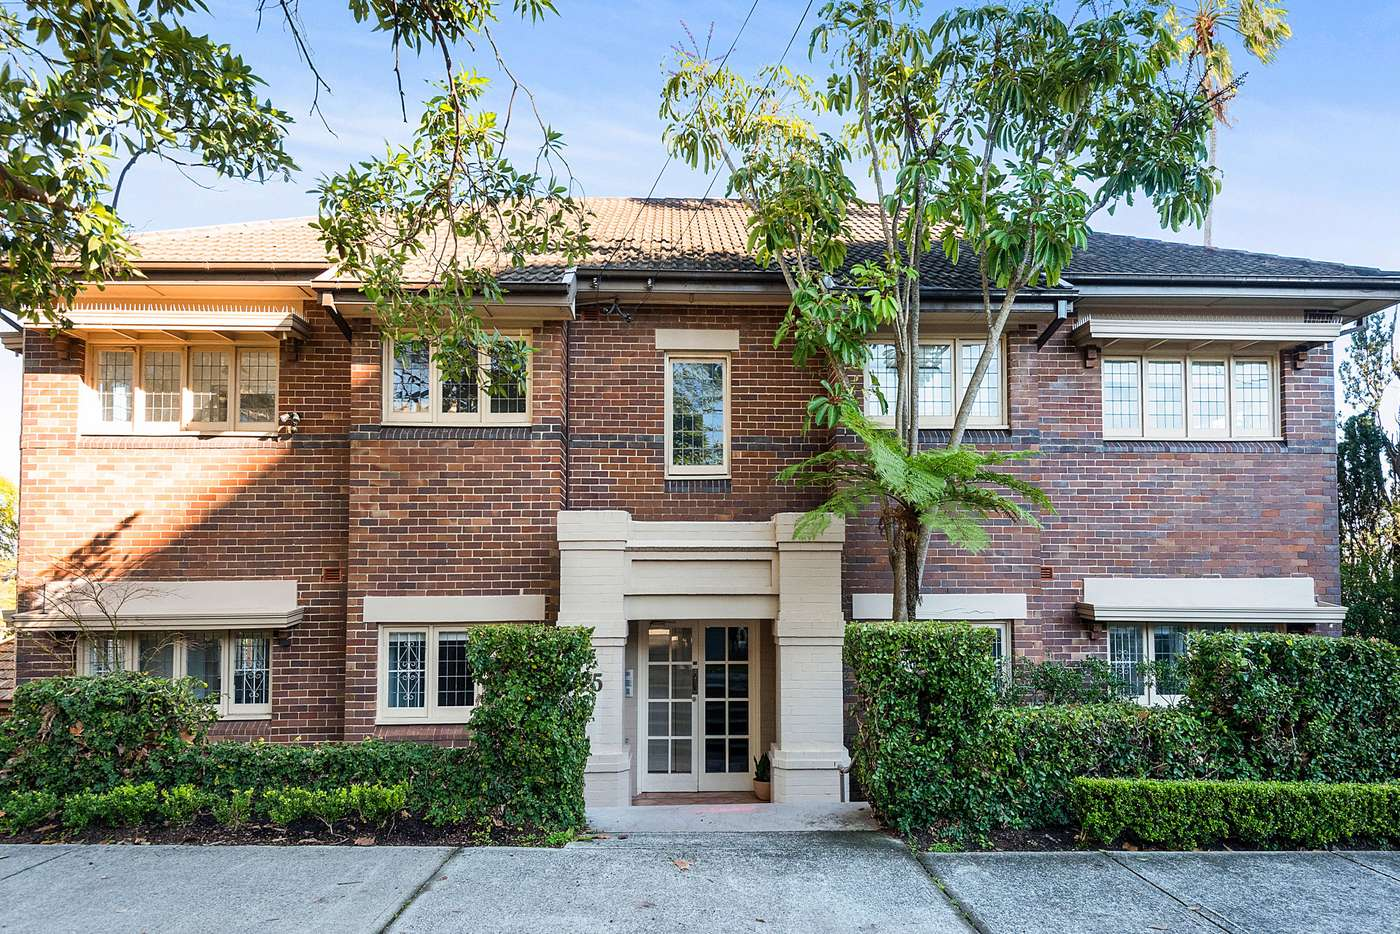 Main view of Homely apartment listing, 2/25 Bapaume Road, Mosman NSW 2088